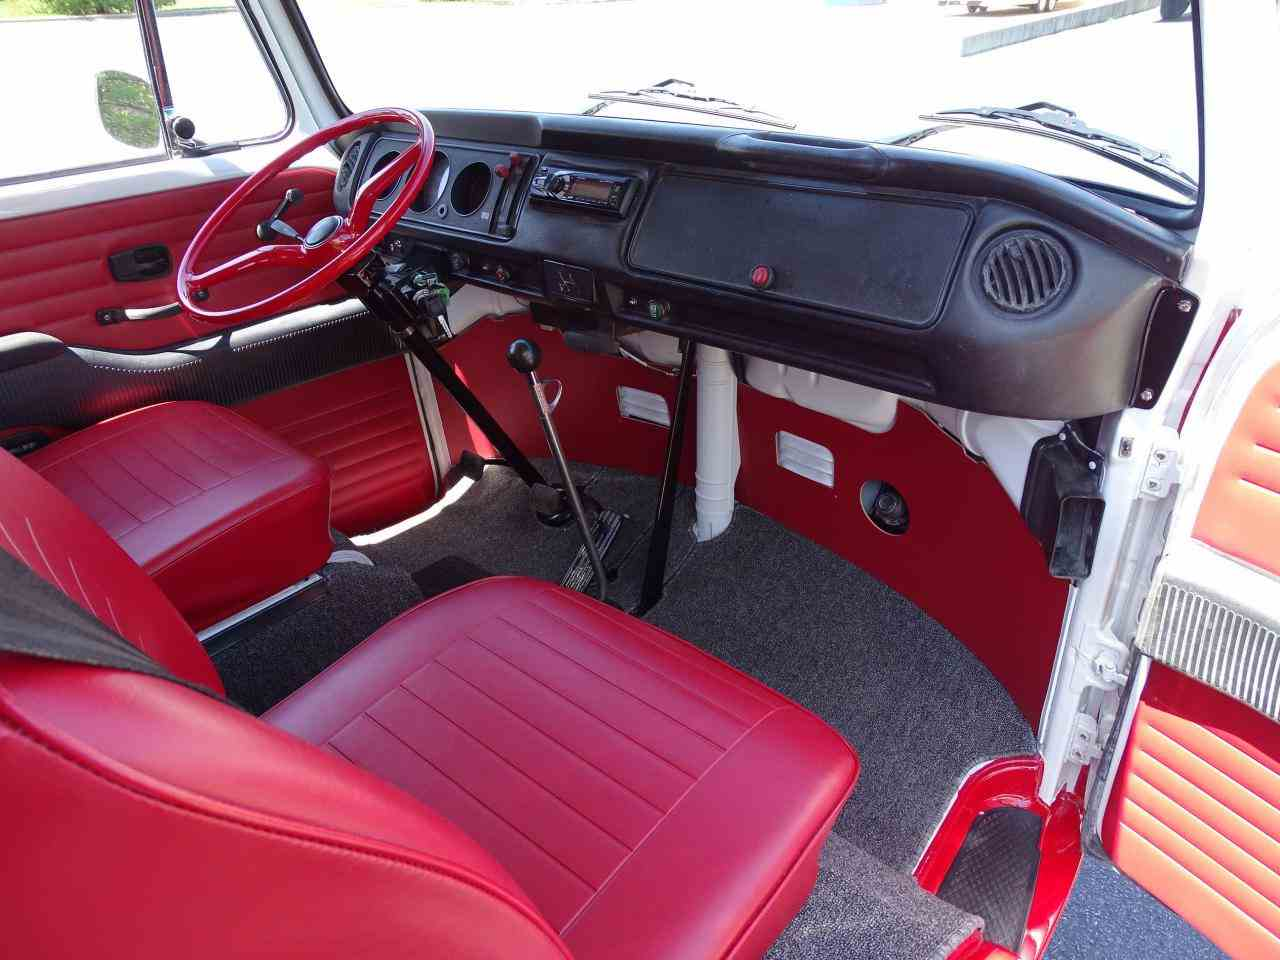 Large Picture of '74 Westfalia Camper located in O'Fallon Illinois - $34,995.00 Offered by Gateway Classic Cars - St. Louis - NEEL